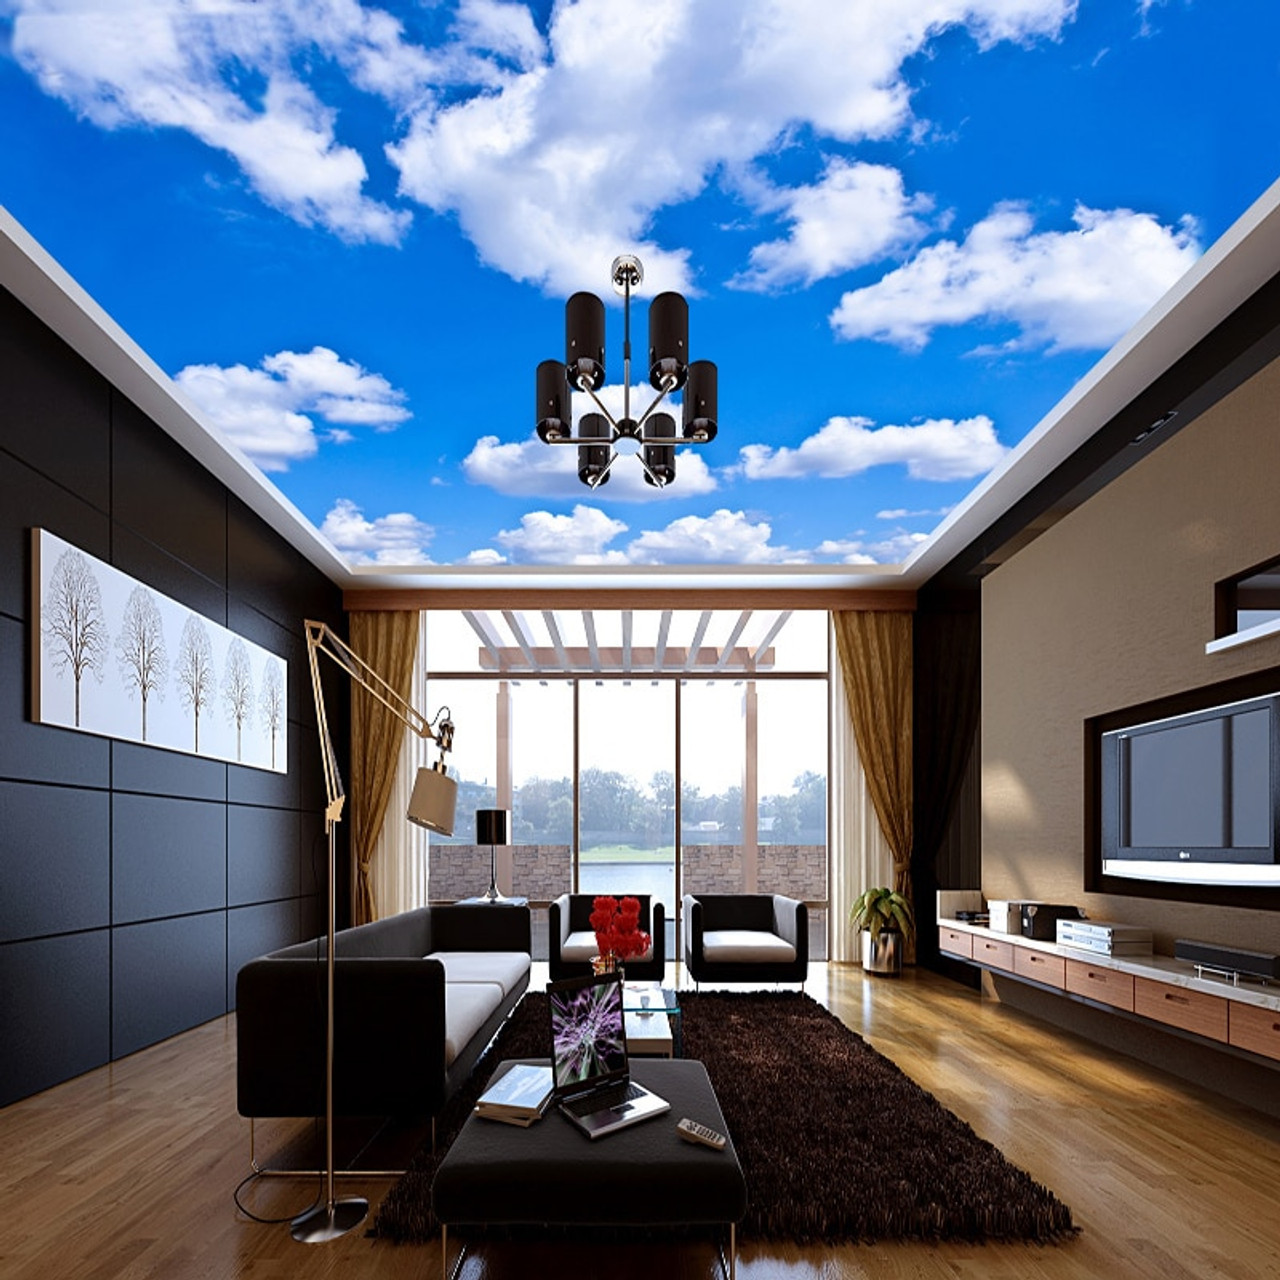 Custom Ceiling Mural Wallpaper 3D Blue Sky And White Clouds Living Room Bedroom Ceiling Background Photo  90848.1540308364